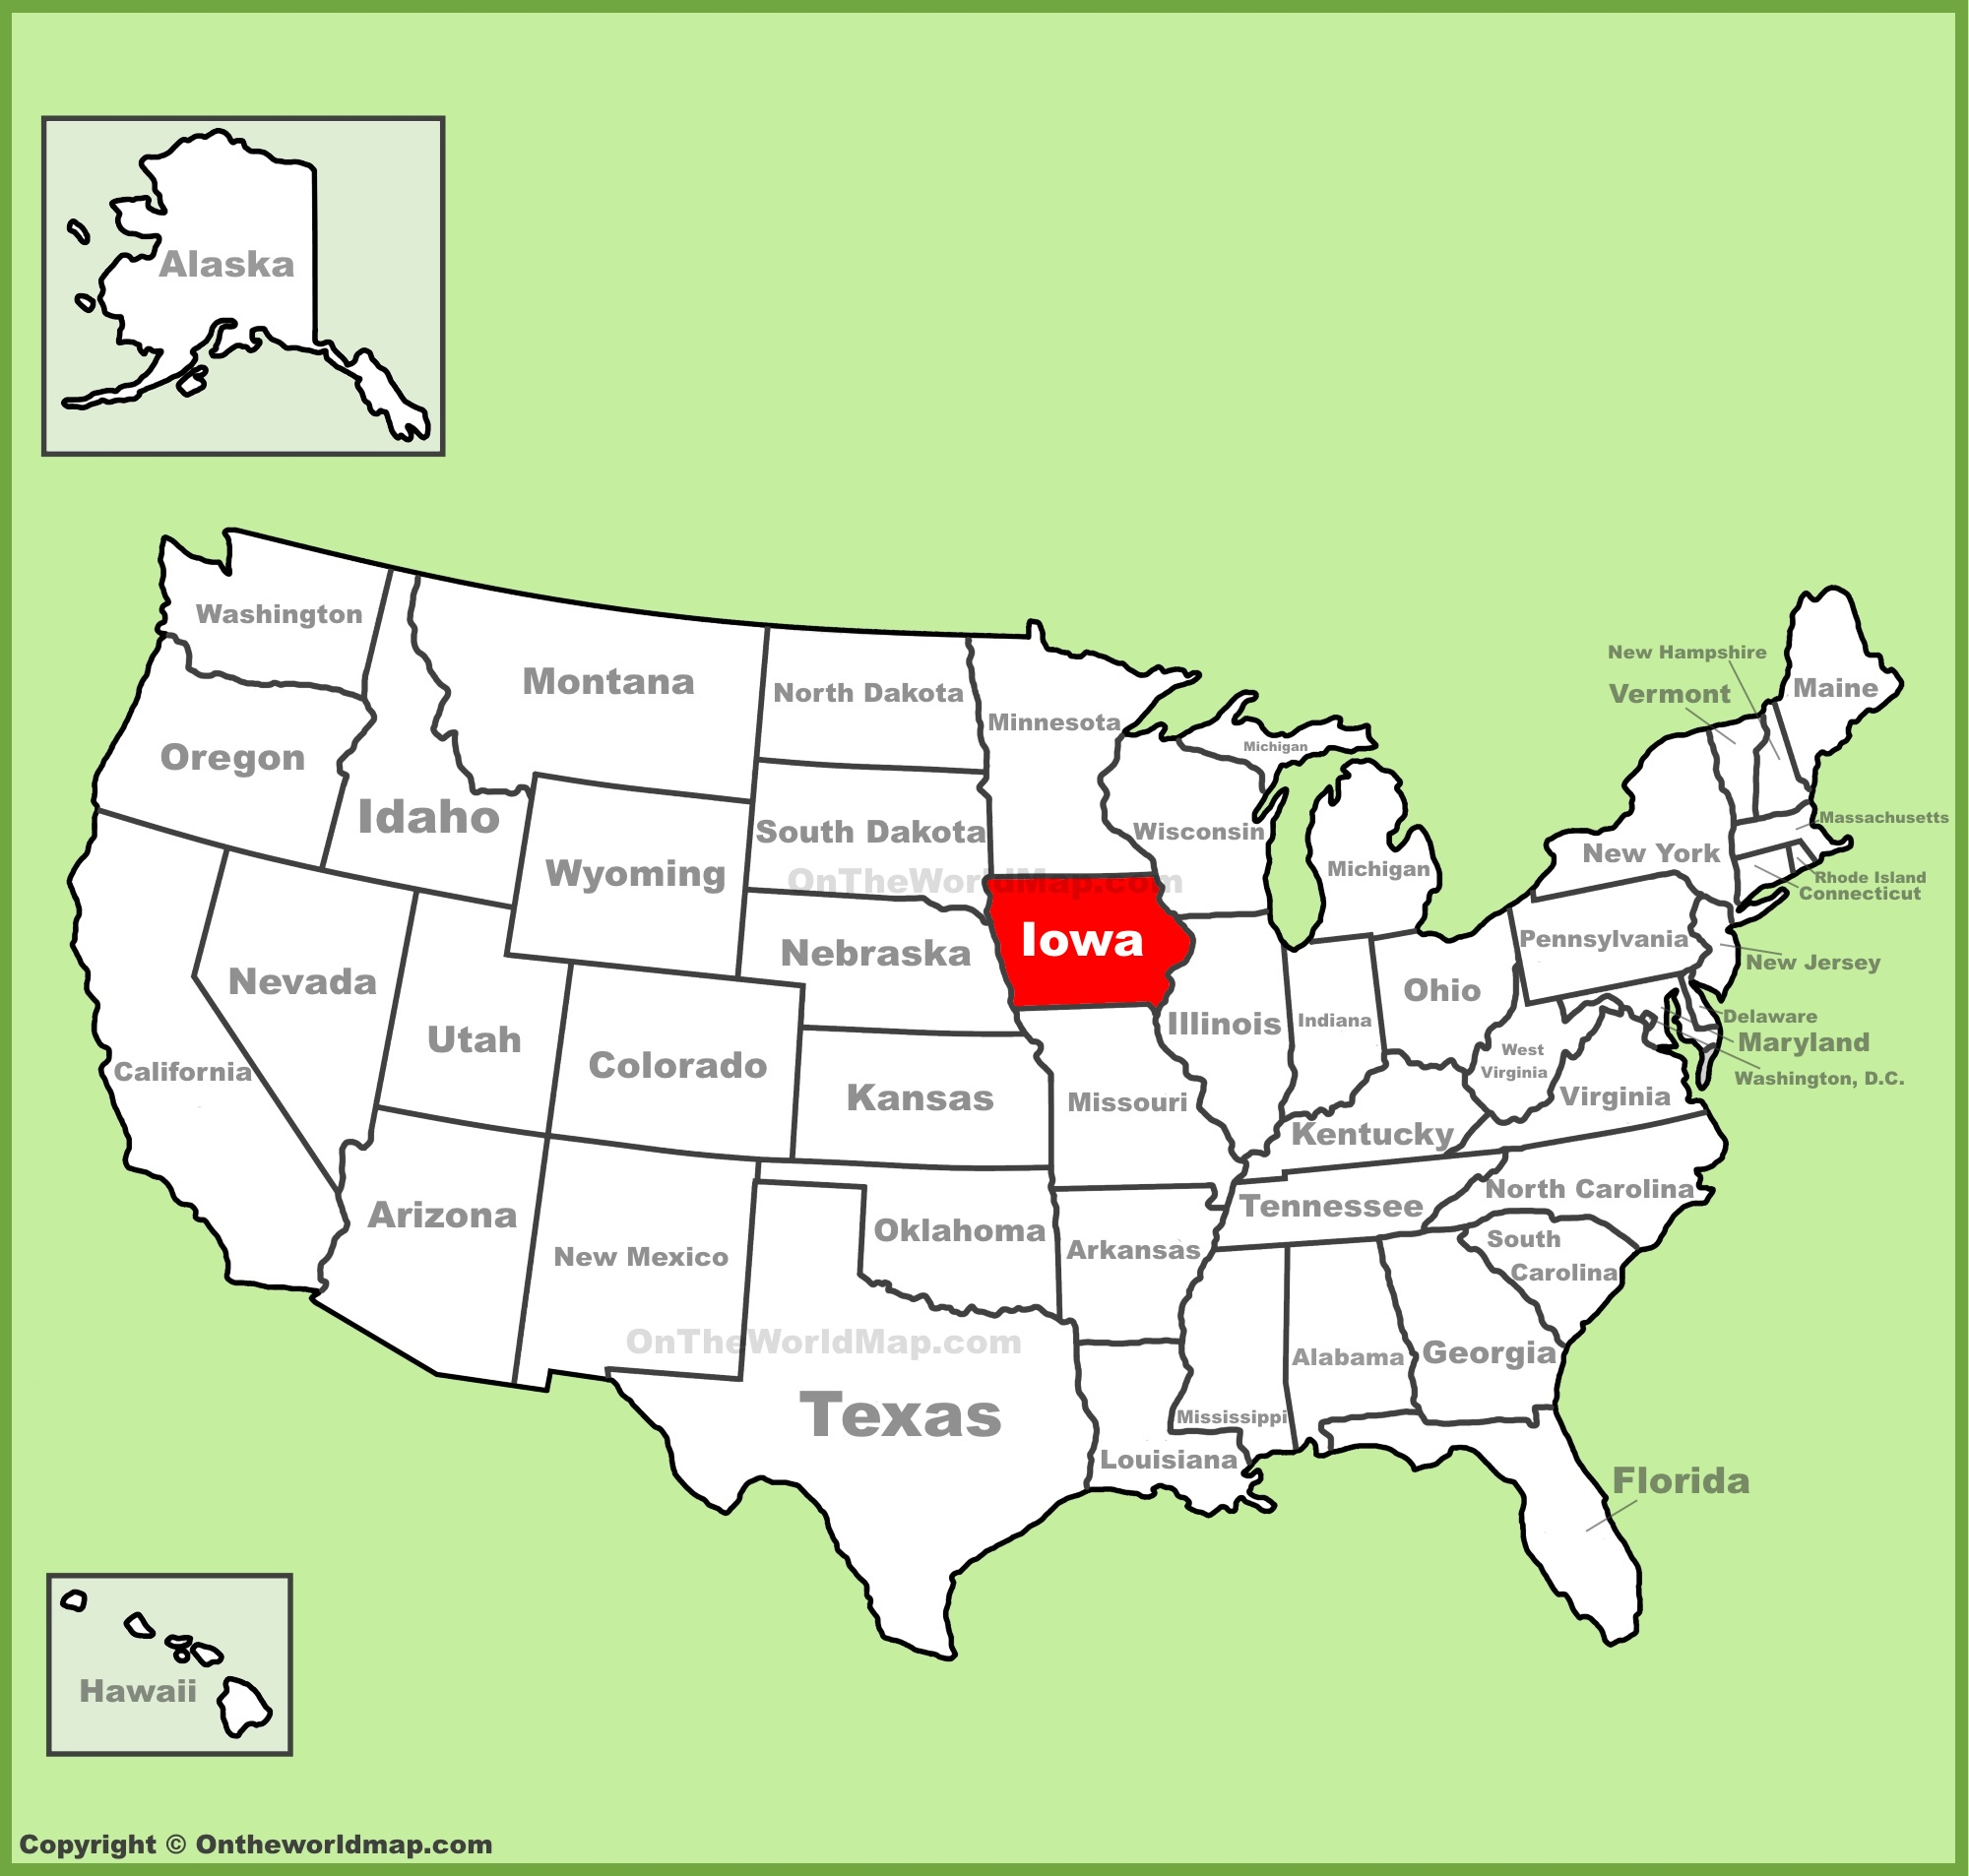 Iowa State Maps | Usa | Maps Of Iowa (Ia) - Printable Map Of Iowa